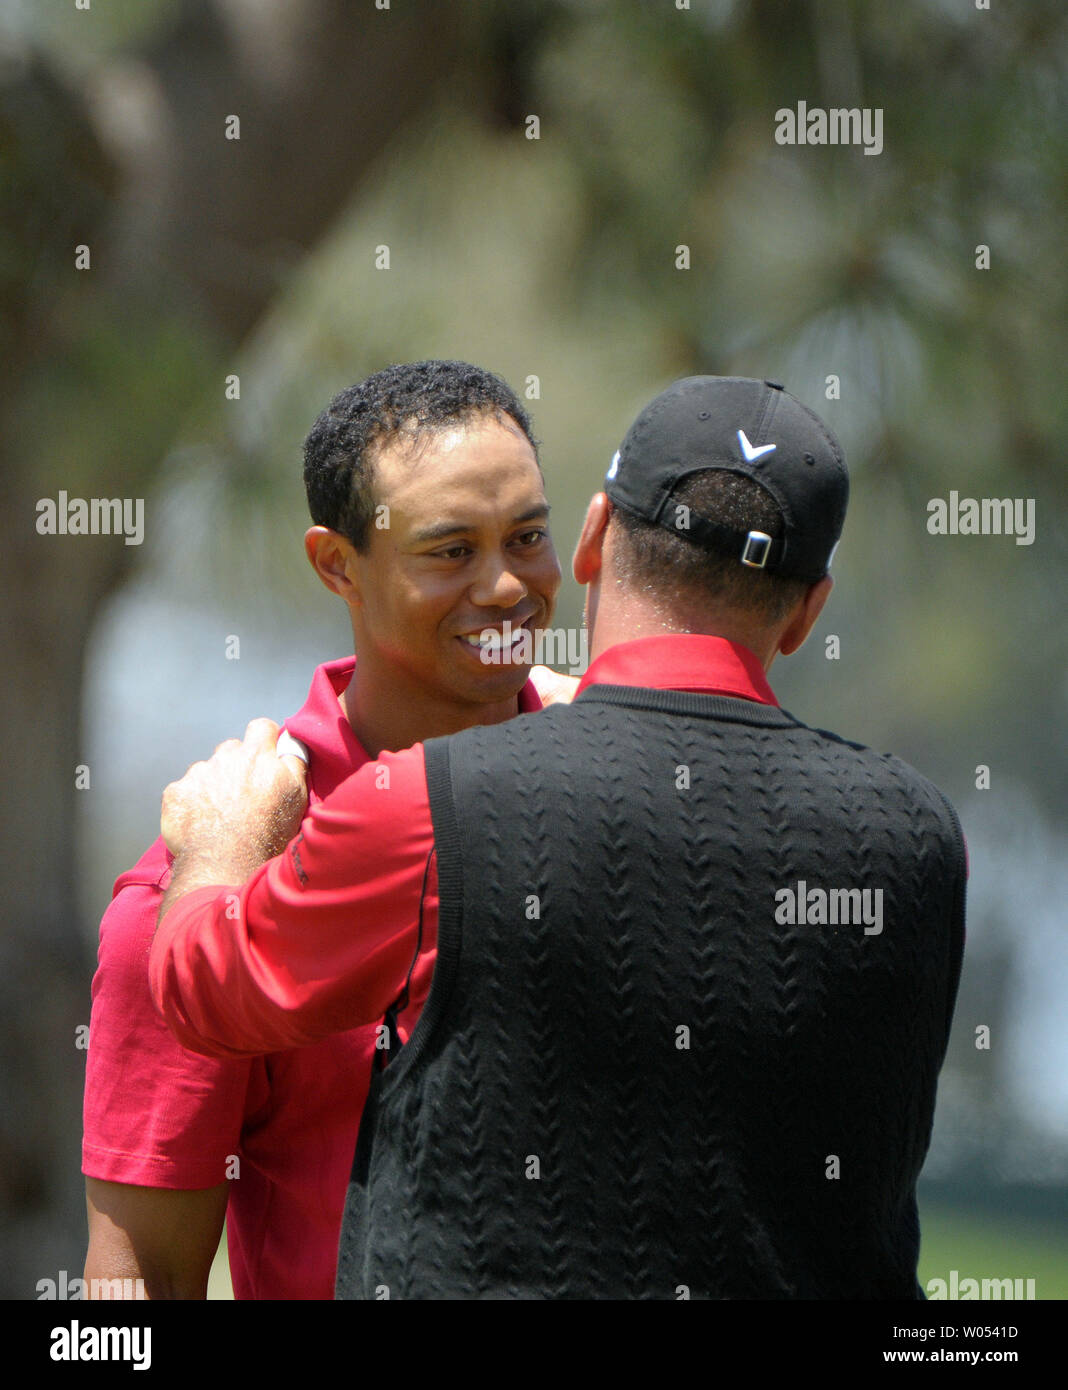 Tiger Woods (L) is congratulated by Rocco Mediate after winning the 108th US Open at Torrey Pines Golf Course in San Diego on June 16, 2008. (UPI Photo/Earl S. Cryer) - Stock Image